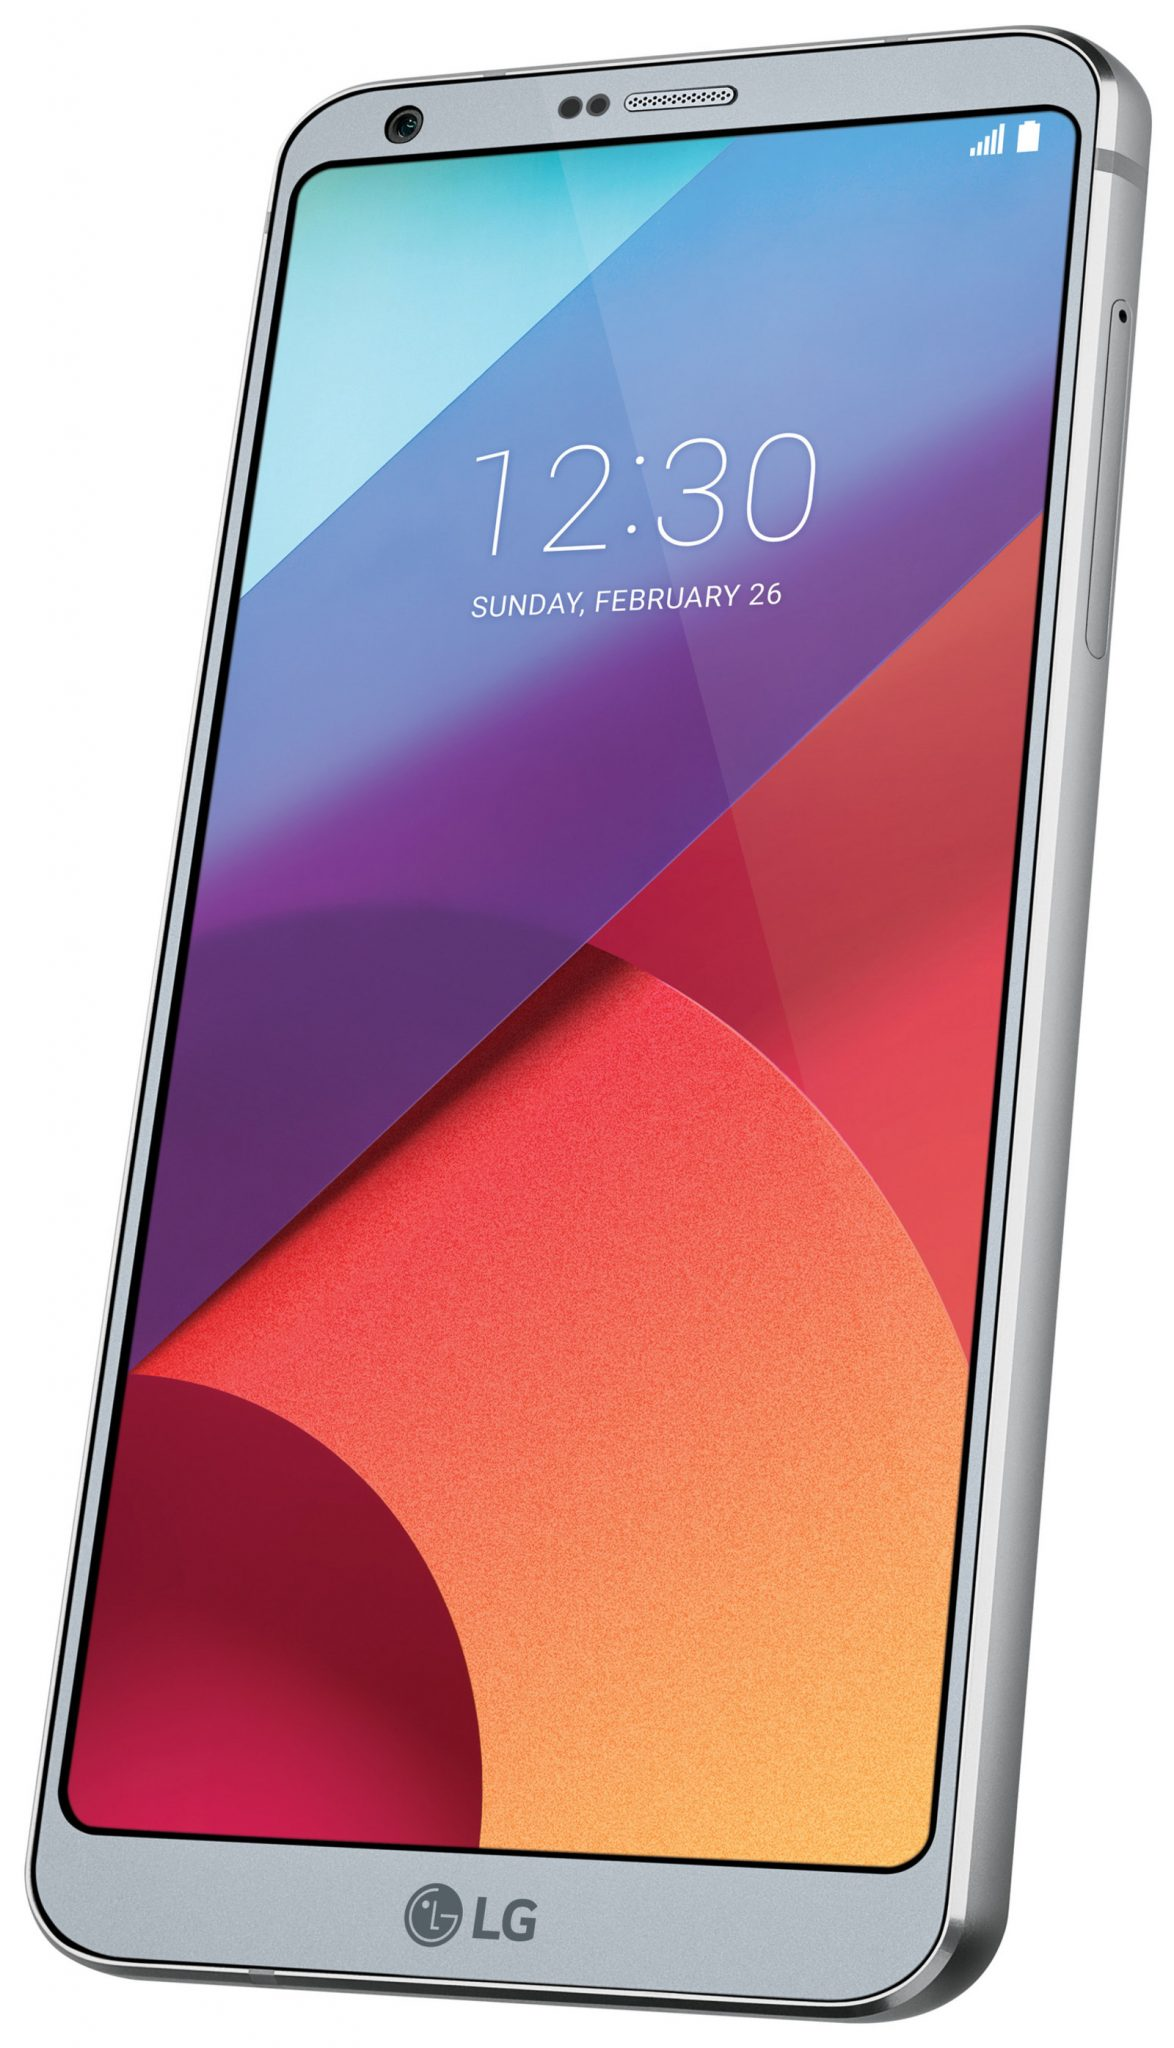 LG shows off new LG G6 smartphone | | Technology Times